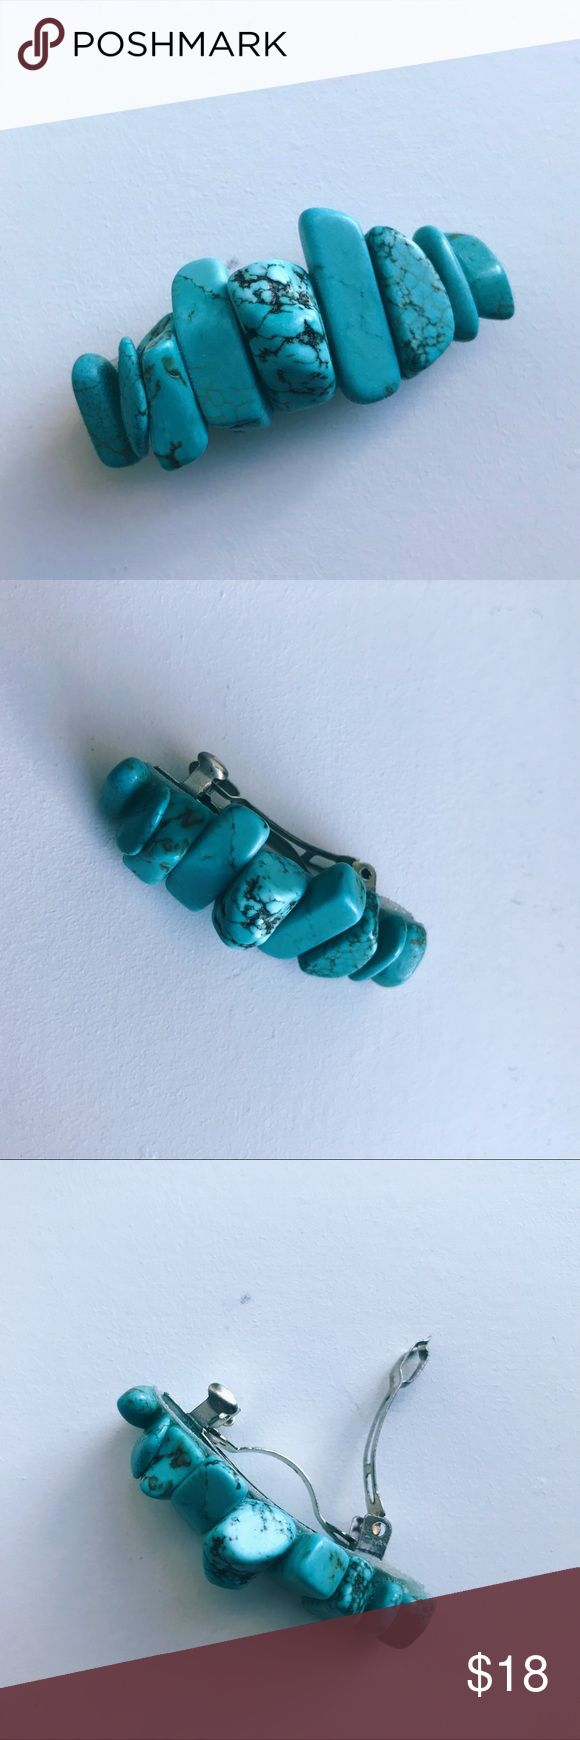 """➕Turquoise Stone Hair Barrette certified authentic gemstone barrettes in shop! French style enclosure. 2"""" inches in length, 1"""" inch closure. Listing is for one barrette. These are handmade, to help pay for my ongoing medical treatment.  tags: boho wedding beach mermaid cosplay gypsy unif urban outfitters anthropologie zara asos crystal healing hippie hippy burning man native navajo aztec witch festival rave LF western hair accessory Jewelry #hippiejewelry #crystalhealing"""